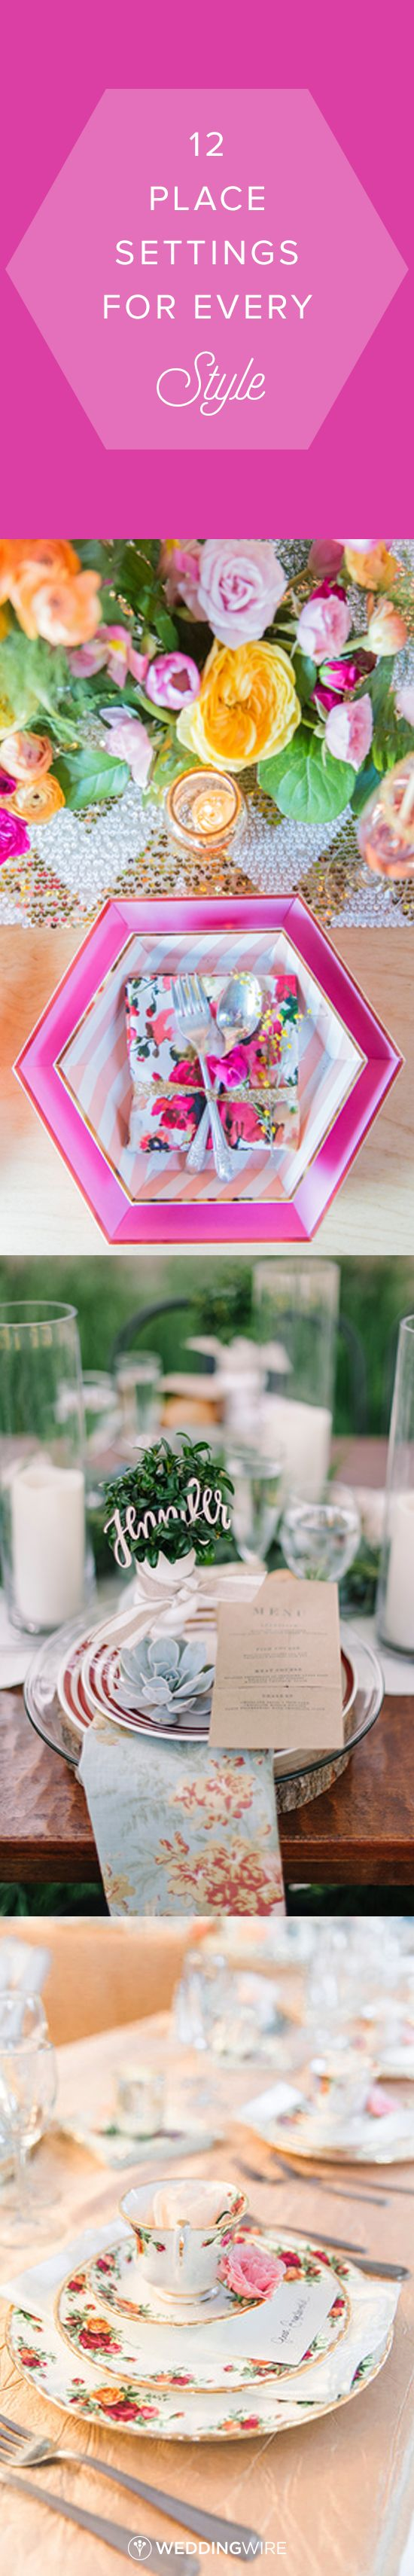 14 best cadires casaments images by Anna Ramis on Pinterest ...